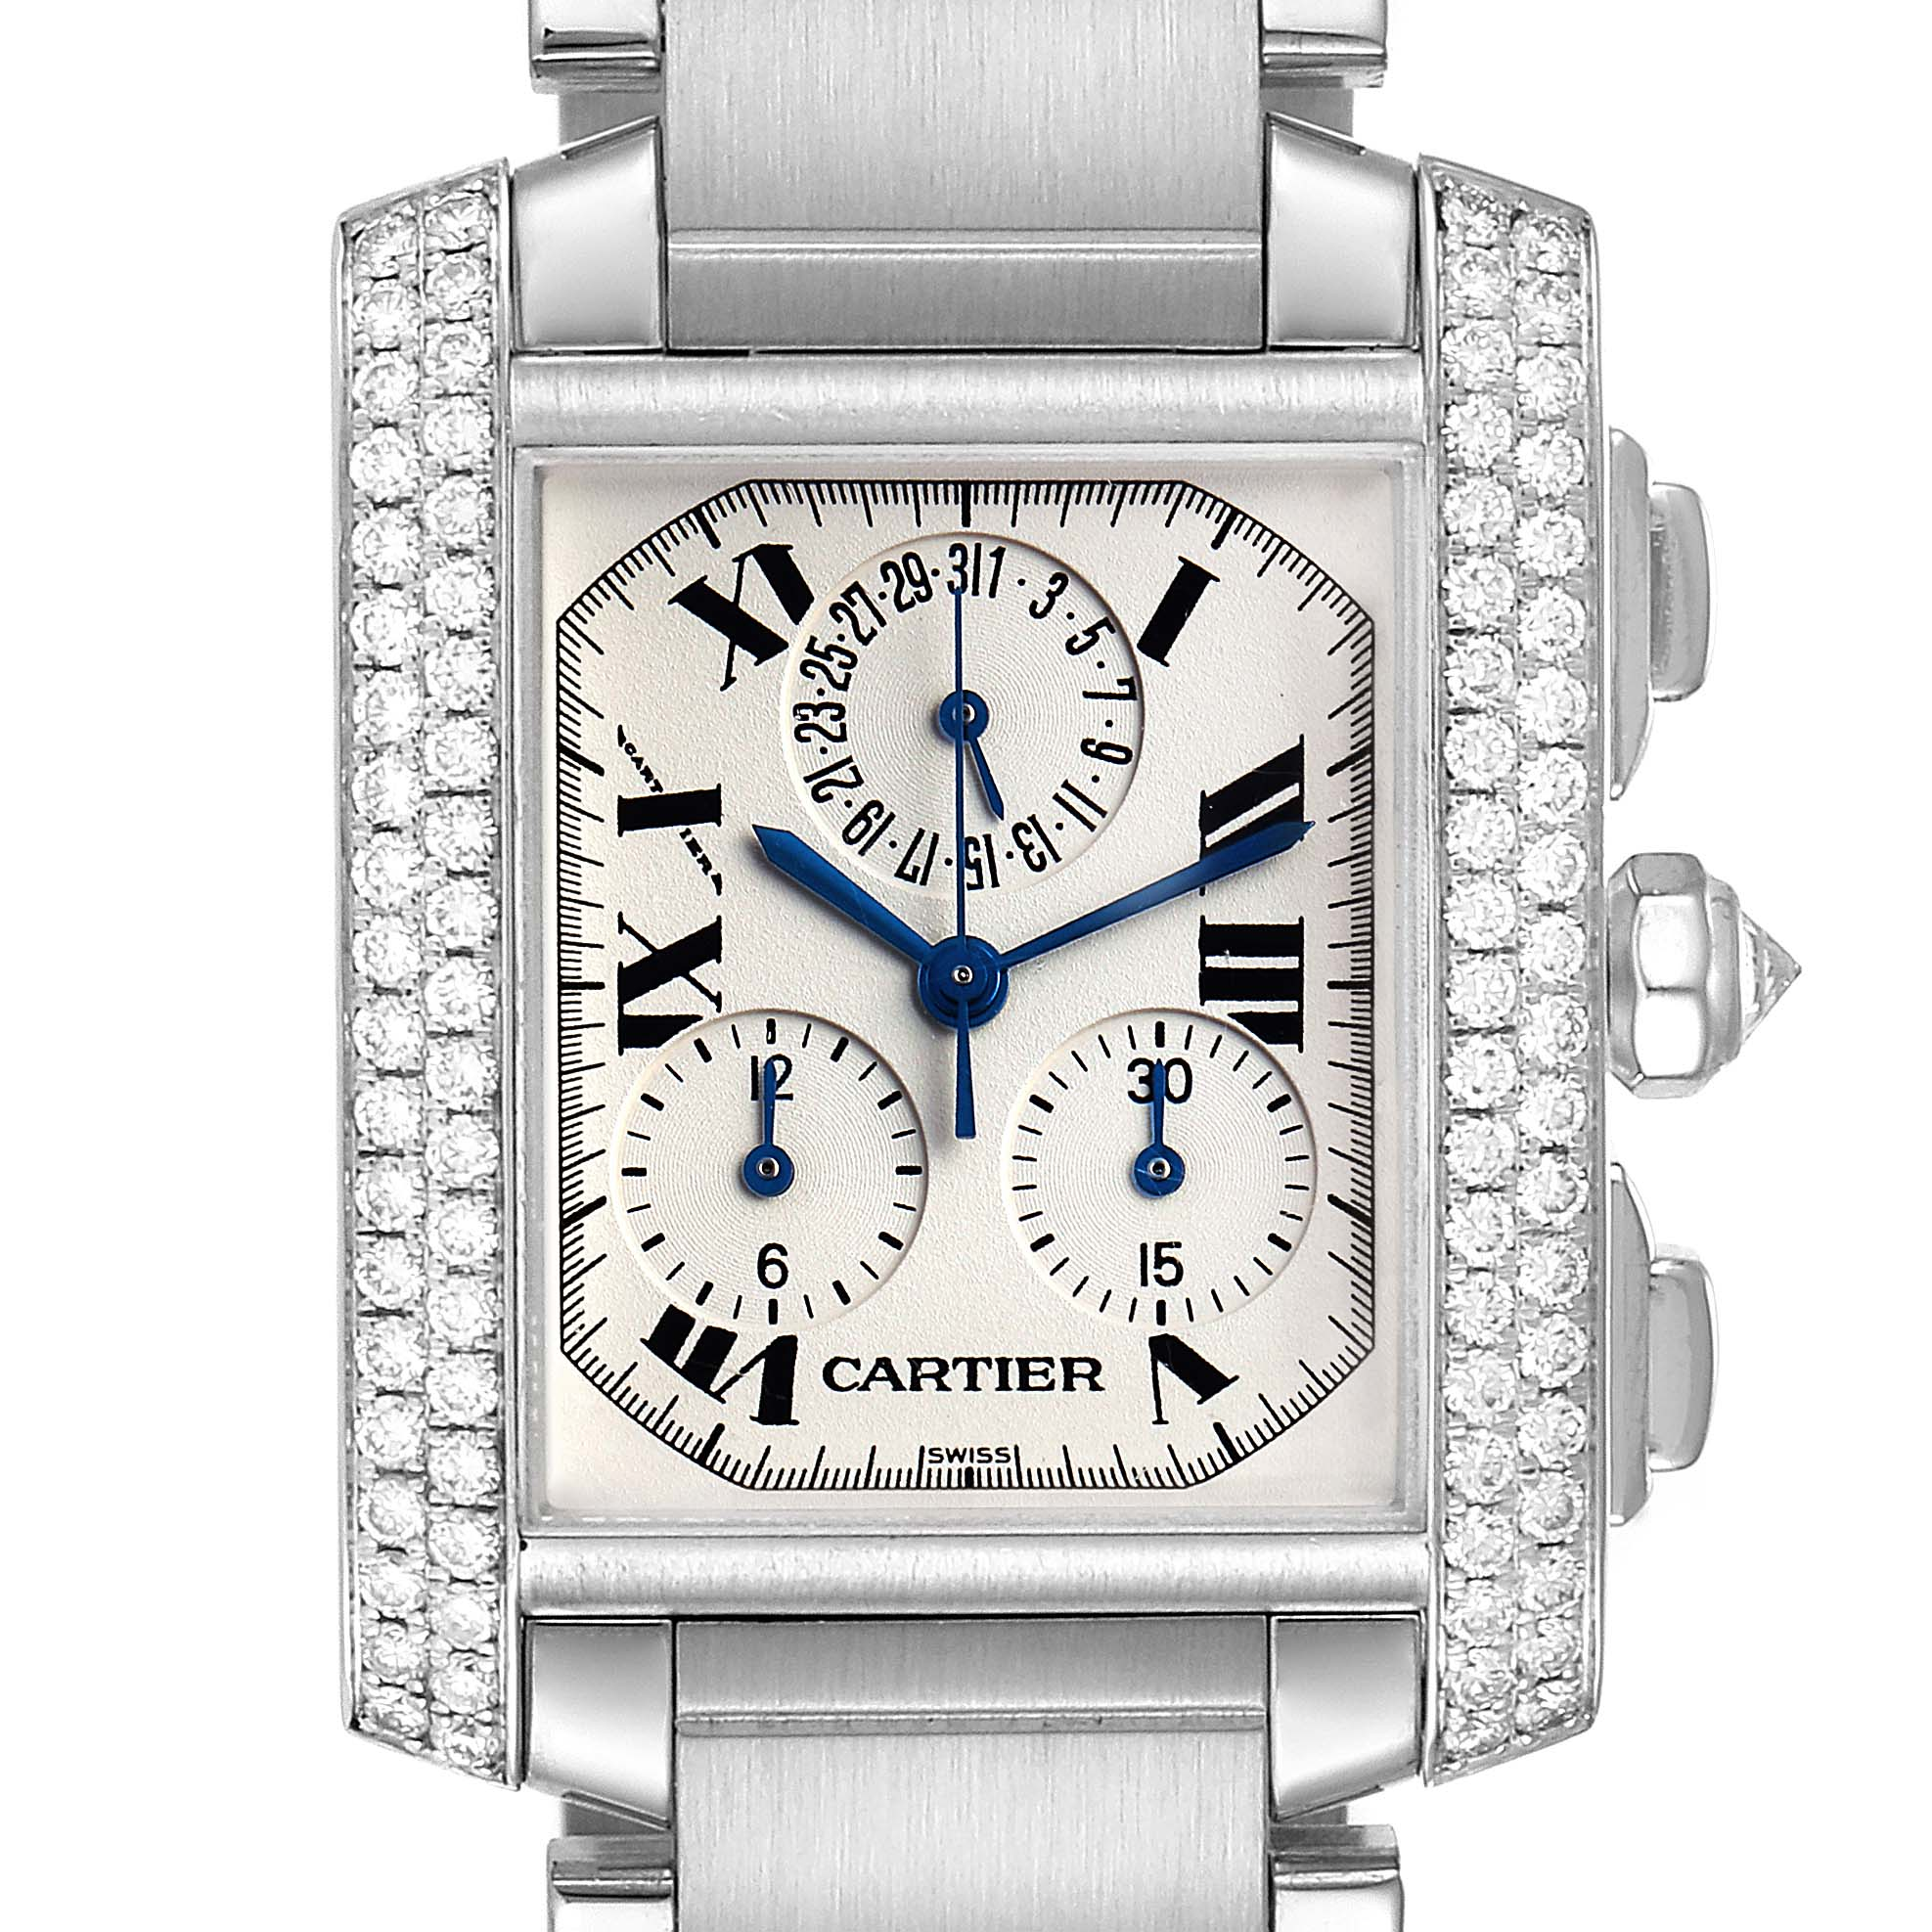 Photo of Cartier Tank Francaise Chrongraph White Gold Diamond Mens Watch 2367